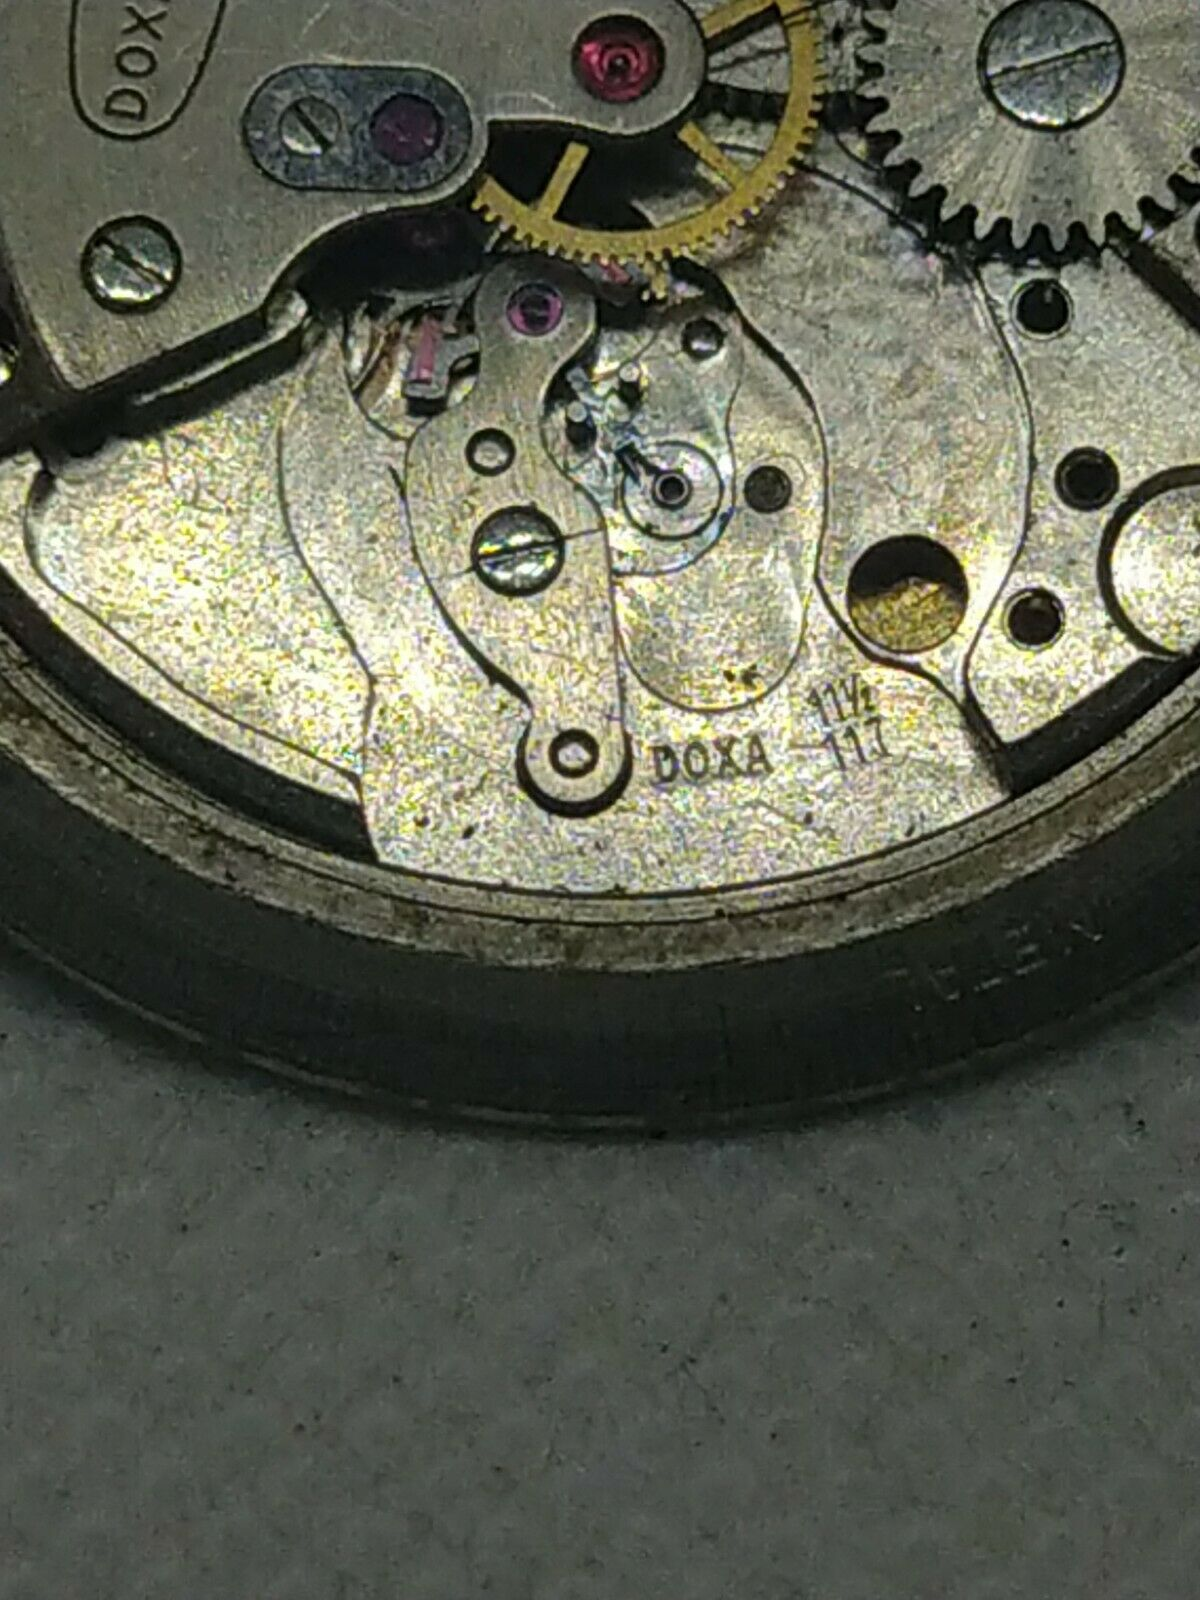 Image 12 - Doxa Cal 117 - 11 1/2  Movement for parts or repair Ultra Rare wind up Vintage